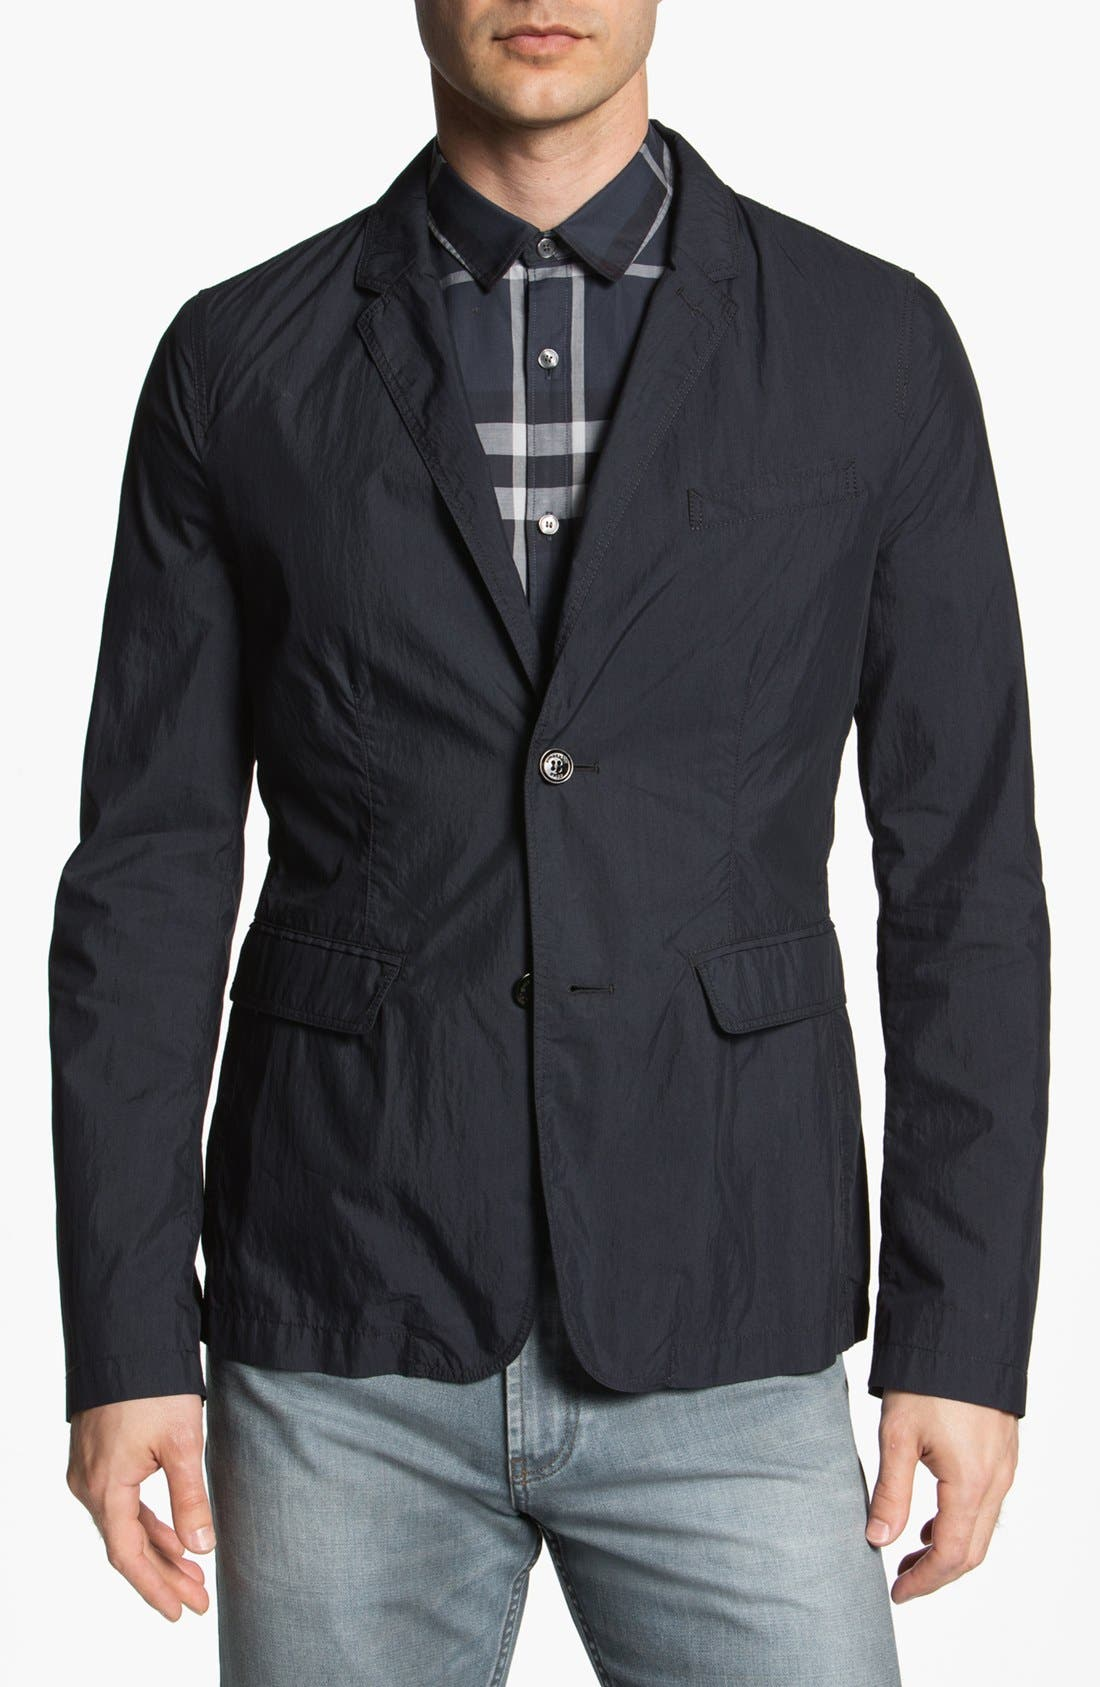 Main Image - Burberry Brit 'Wickham' Trim Fit Sportcoat